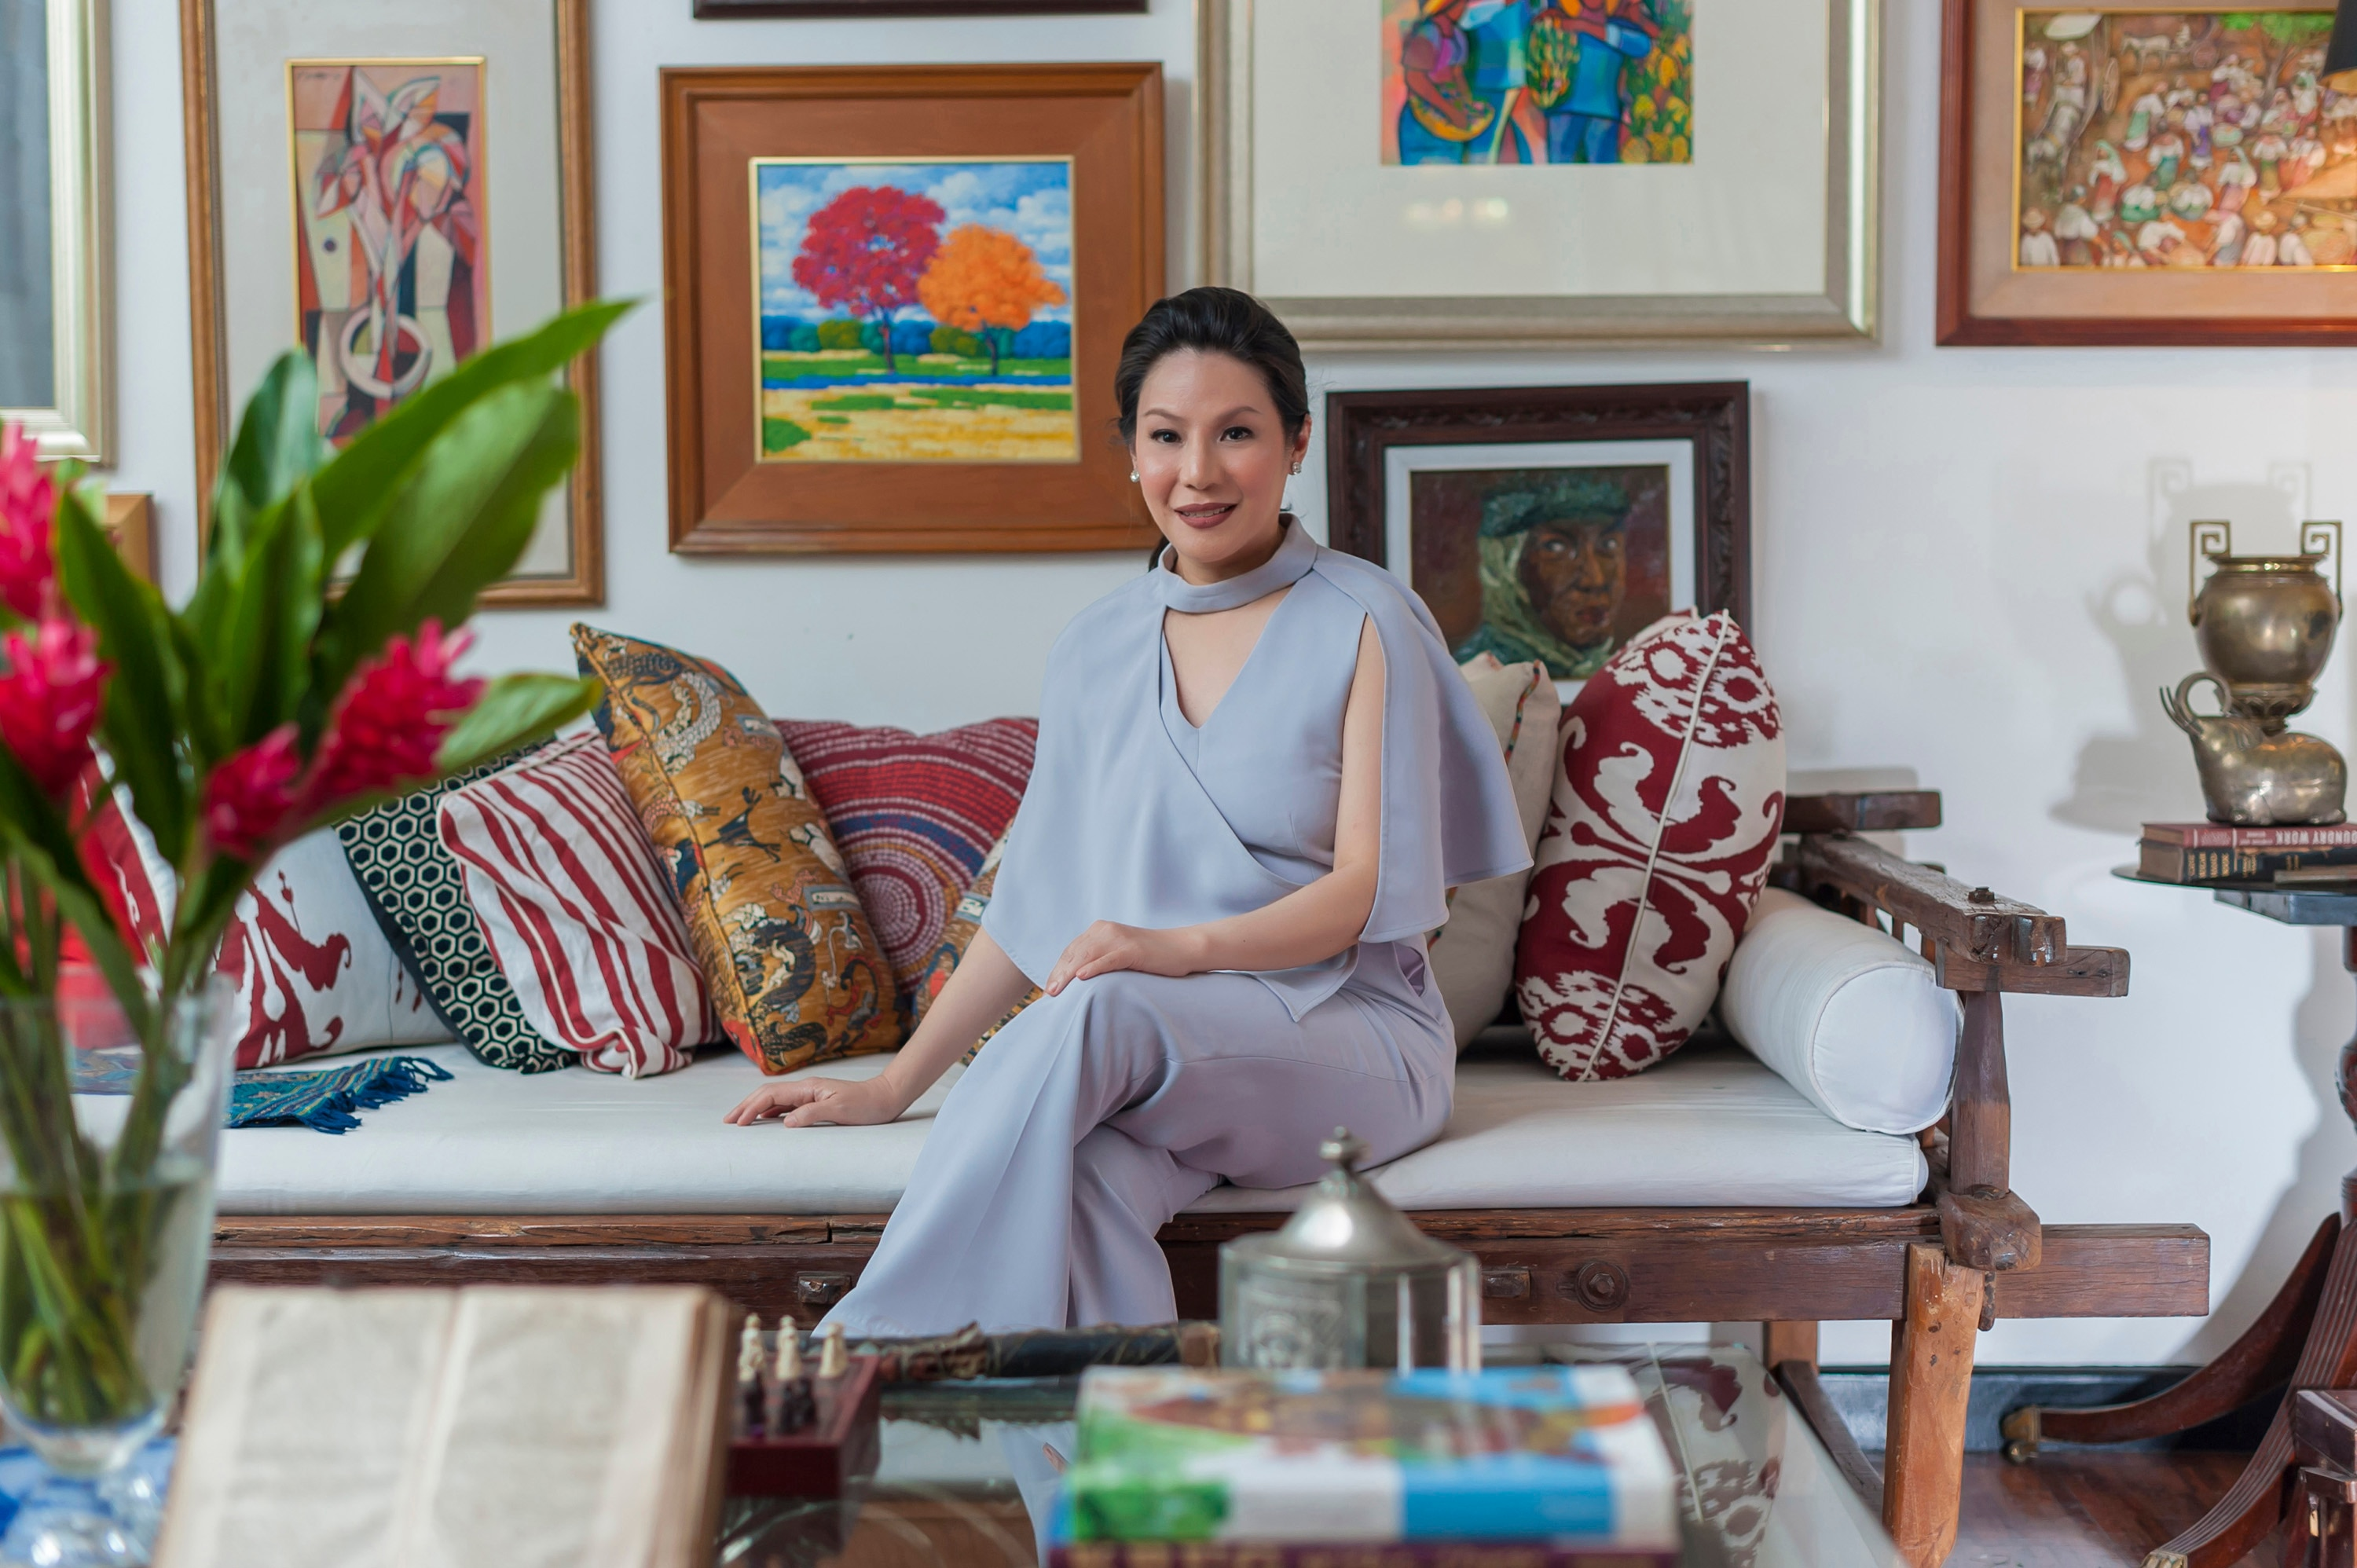 """As a child, Ana De Ocampo would marvel at her grandmother's table. """"She loves to eat and I think I got my sweet tooth from her."""" These days, De Ocampo is happy to hosts Christmas dinners known for excellent food, thanks to her grandmother's influence during her formative years."""